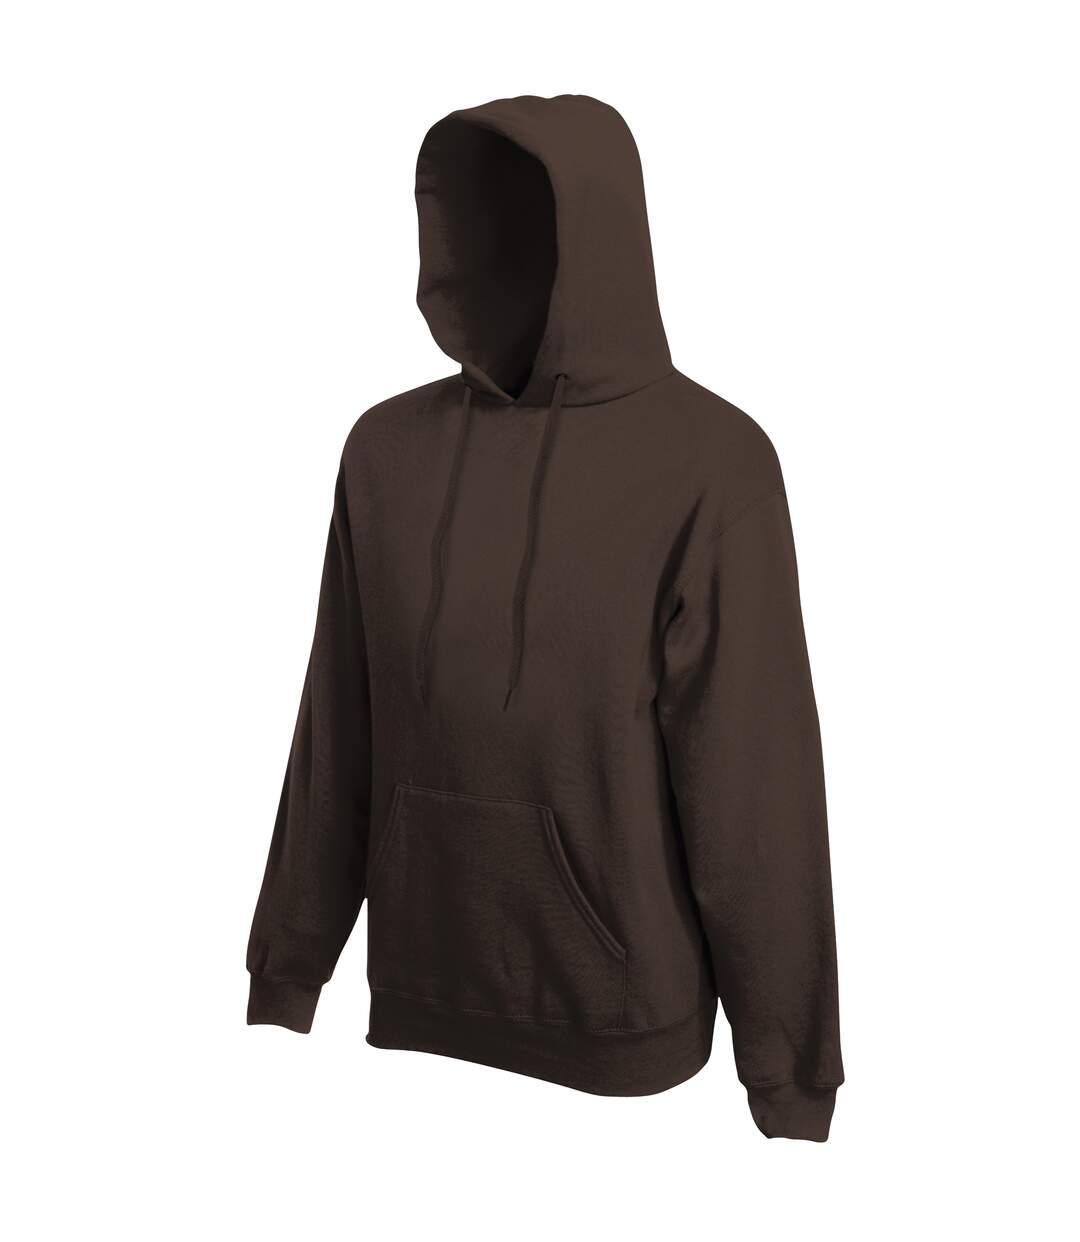 Fruit Of The Loom Mens Premium 70/30 Hooded Sweatshirt / Hoodie (Burgundy) - UTRW3163